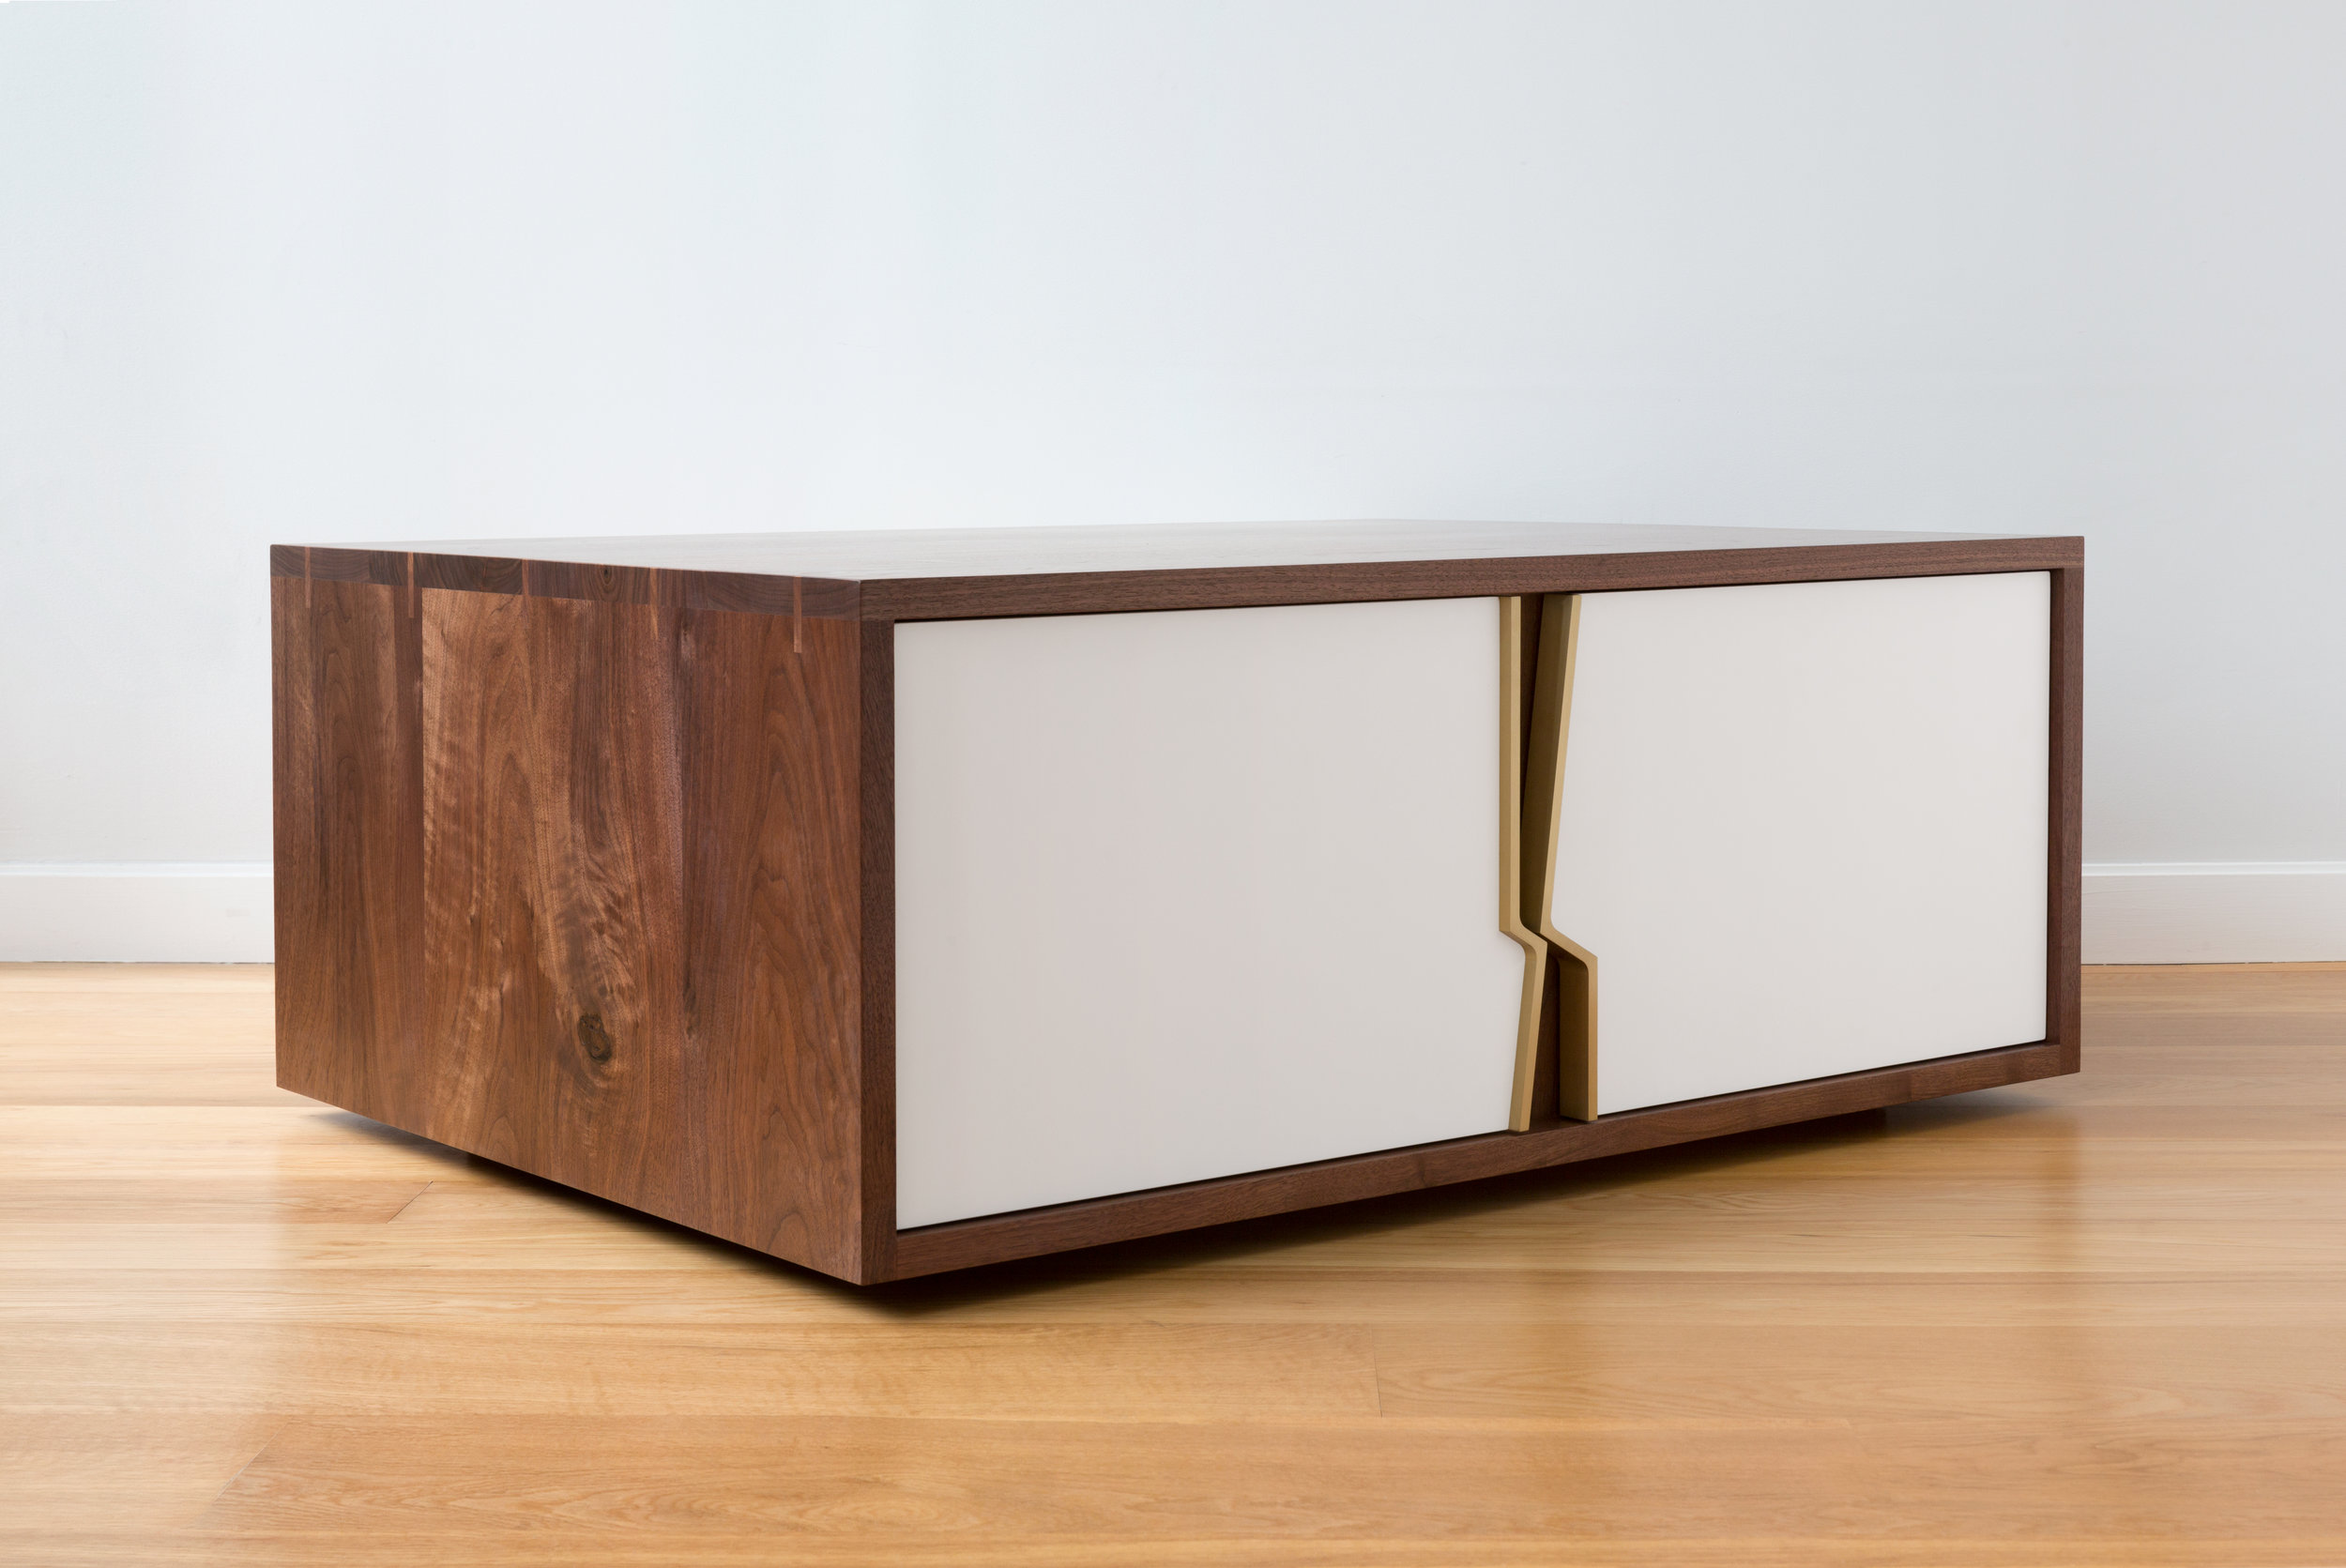 Halsey Fracture Coffee Table in Walnut, Brass and Lacquer by Piet Houtenbos